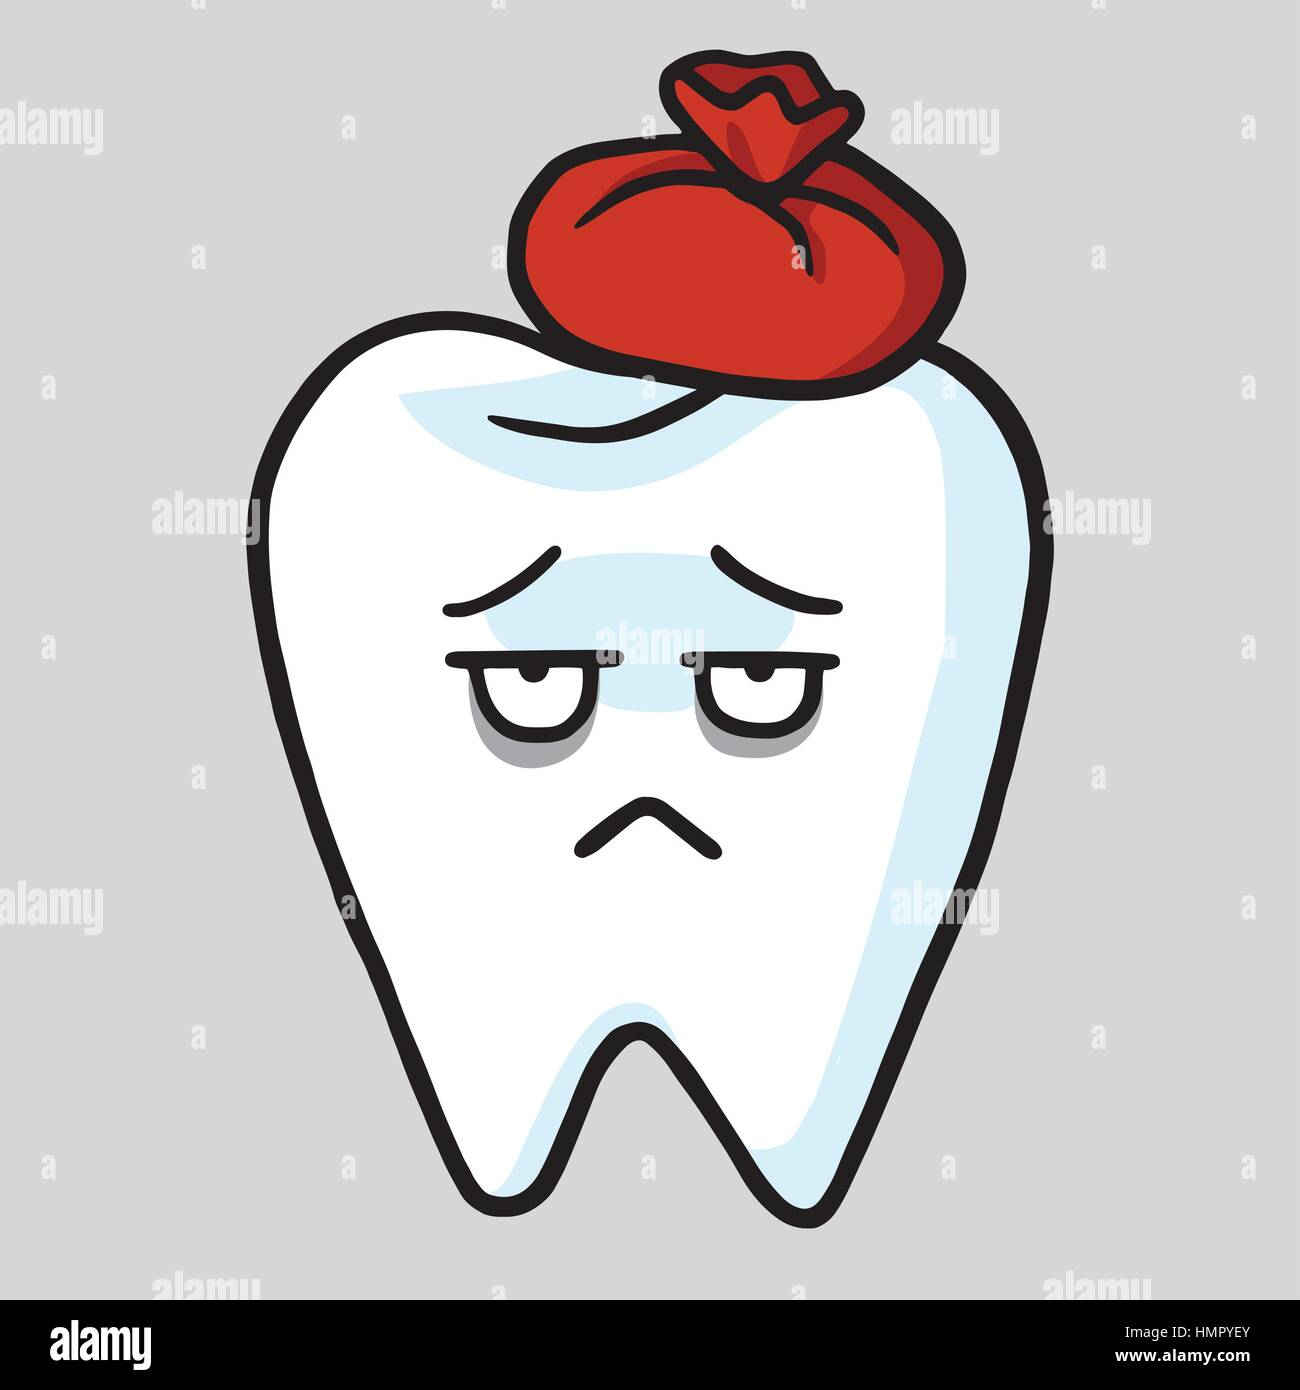 Cute Tooth Cartoon Toothache Vector Illustration Stock Vector Image Art Alamy